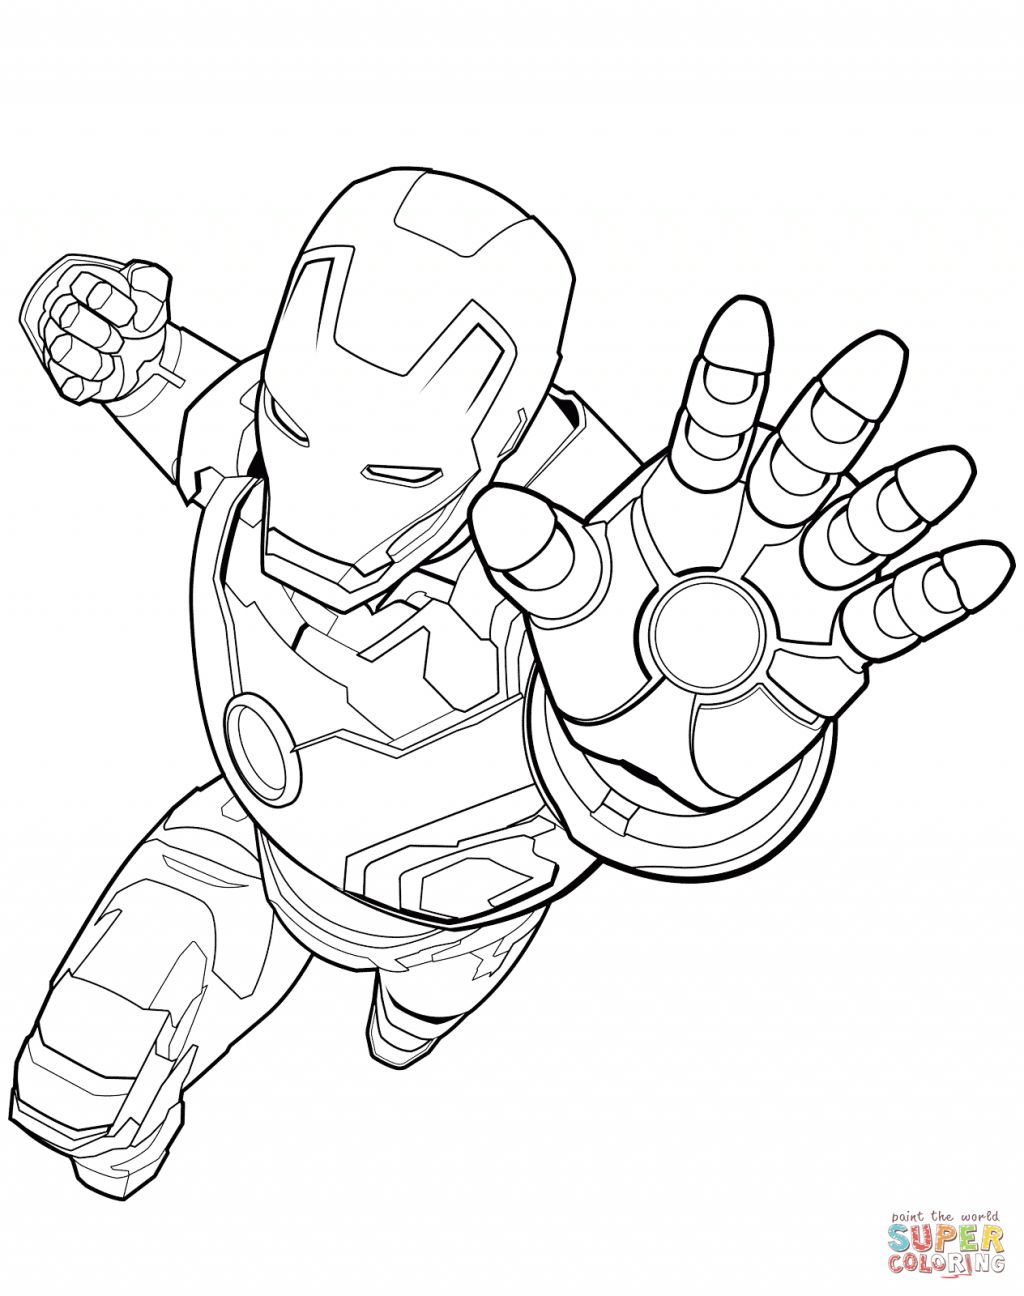 27 Brilliant Picture Of Superhero Coloring Page Entitlementtrap Com In 2020 Avengers Coloring Pages Avengers Coloring Marvel Coloring